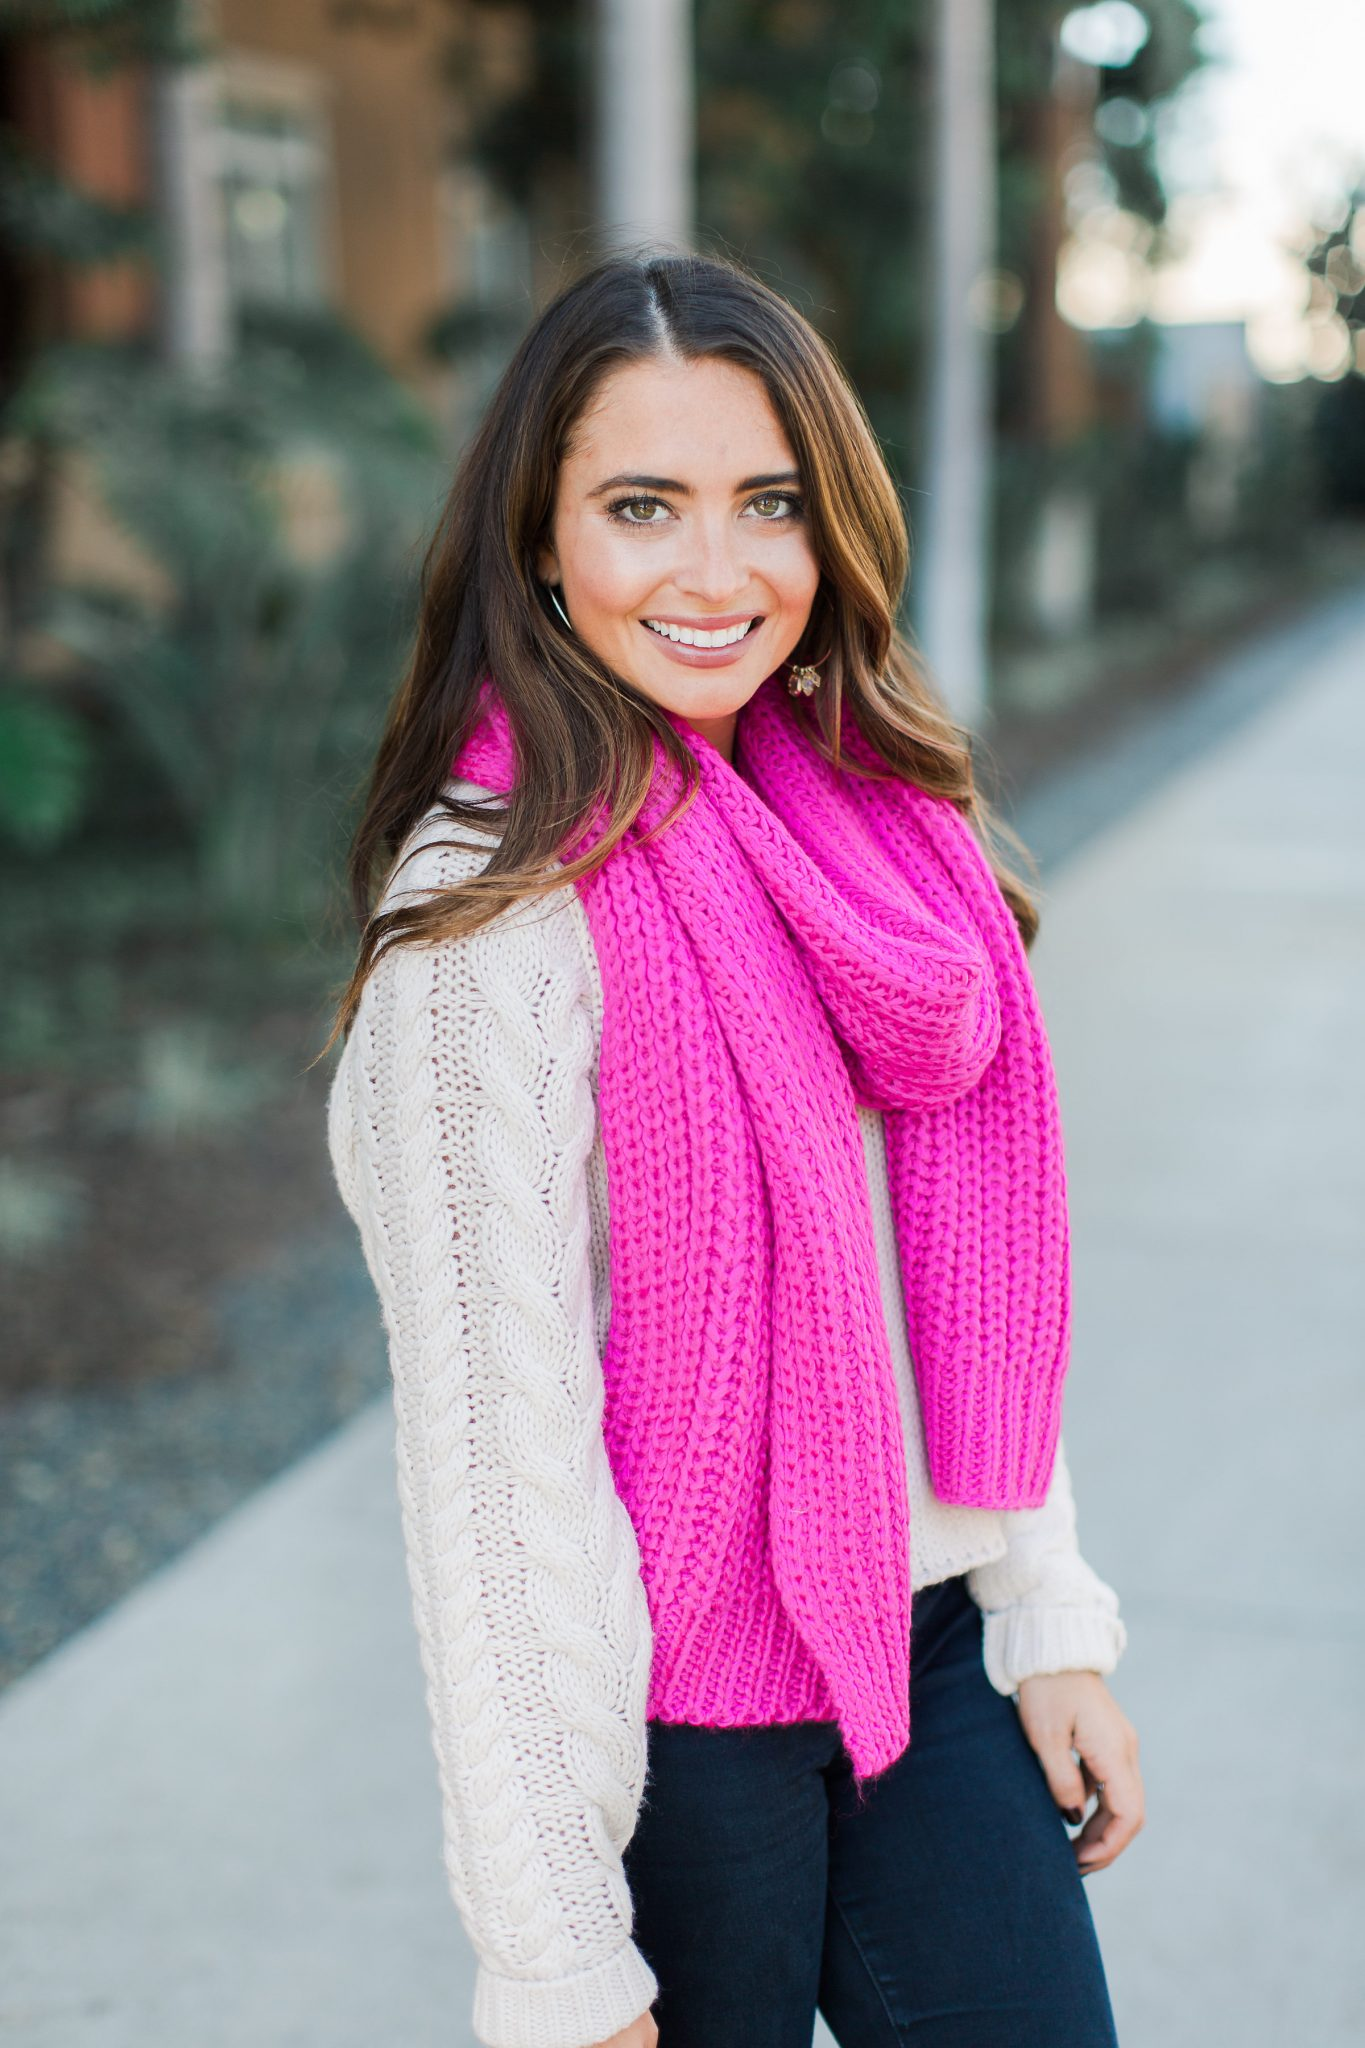 Hot Pink Scarf, Tan Sweater, Louis Vuitton - ASOS Sale top picks featured by popular Orange County fashion blogger, Maxie Elle